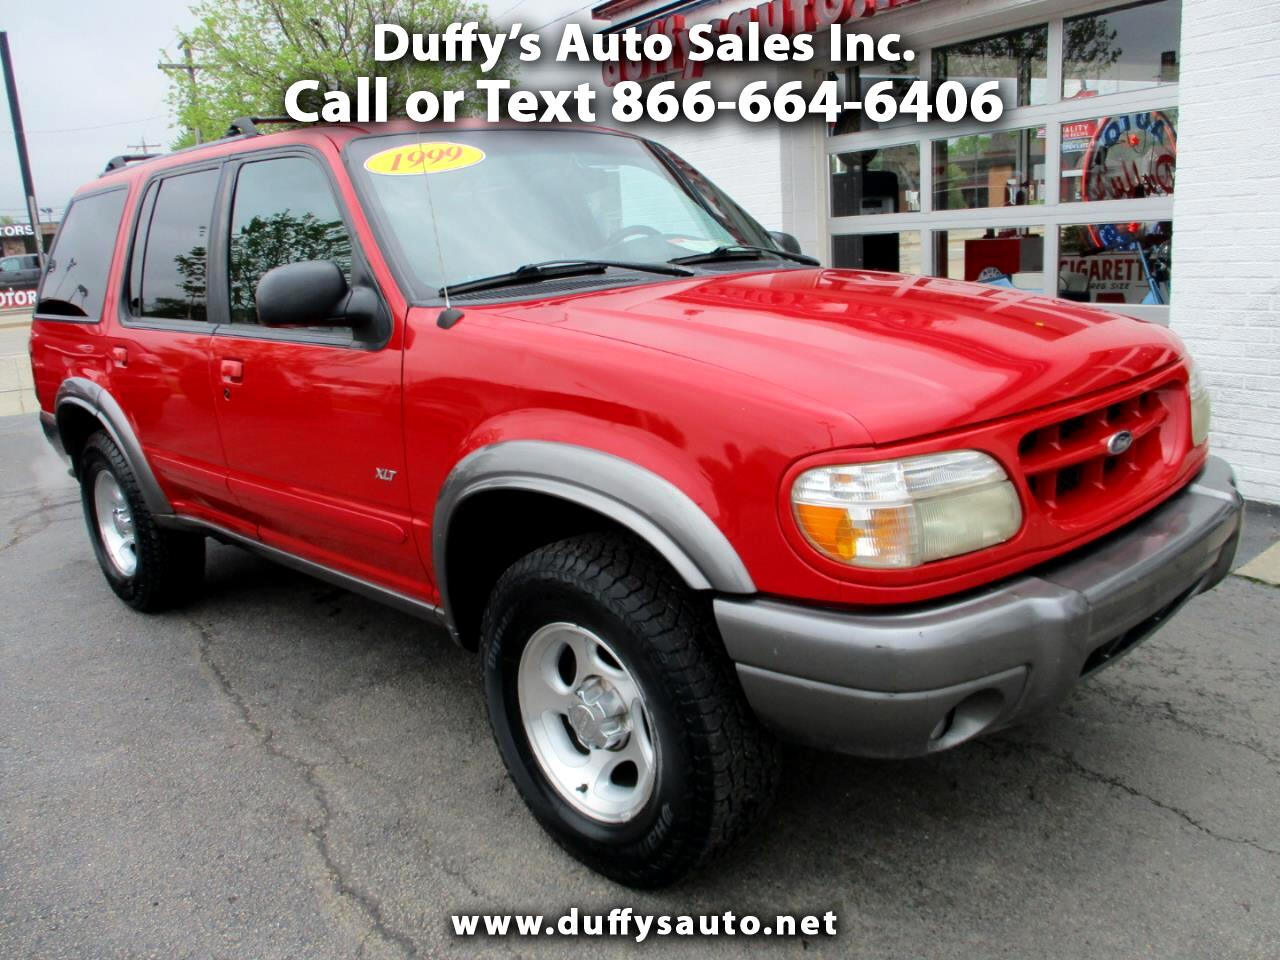 Used 1999 Ford Explorer 4dr 112 Quot Wb Xlt 4wd For Sale In